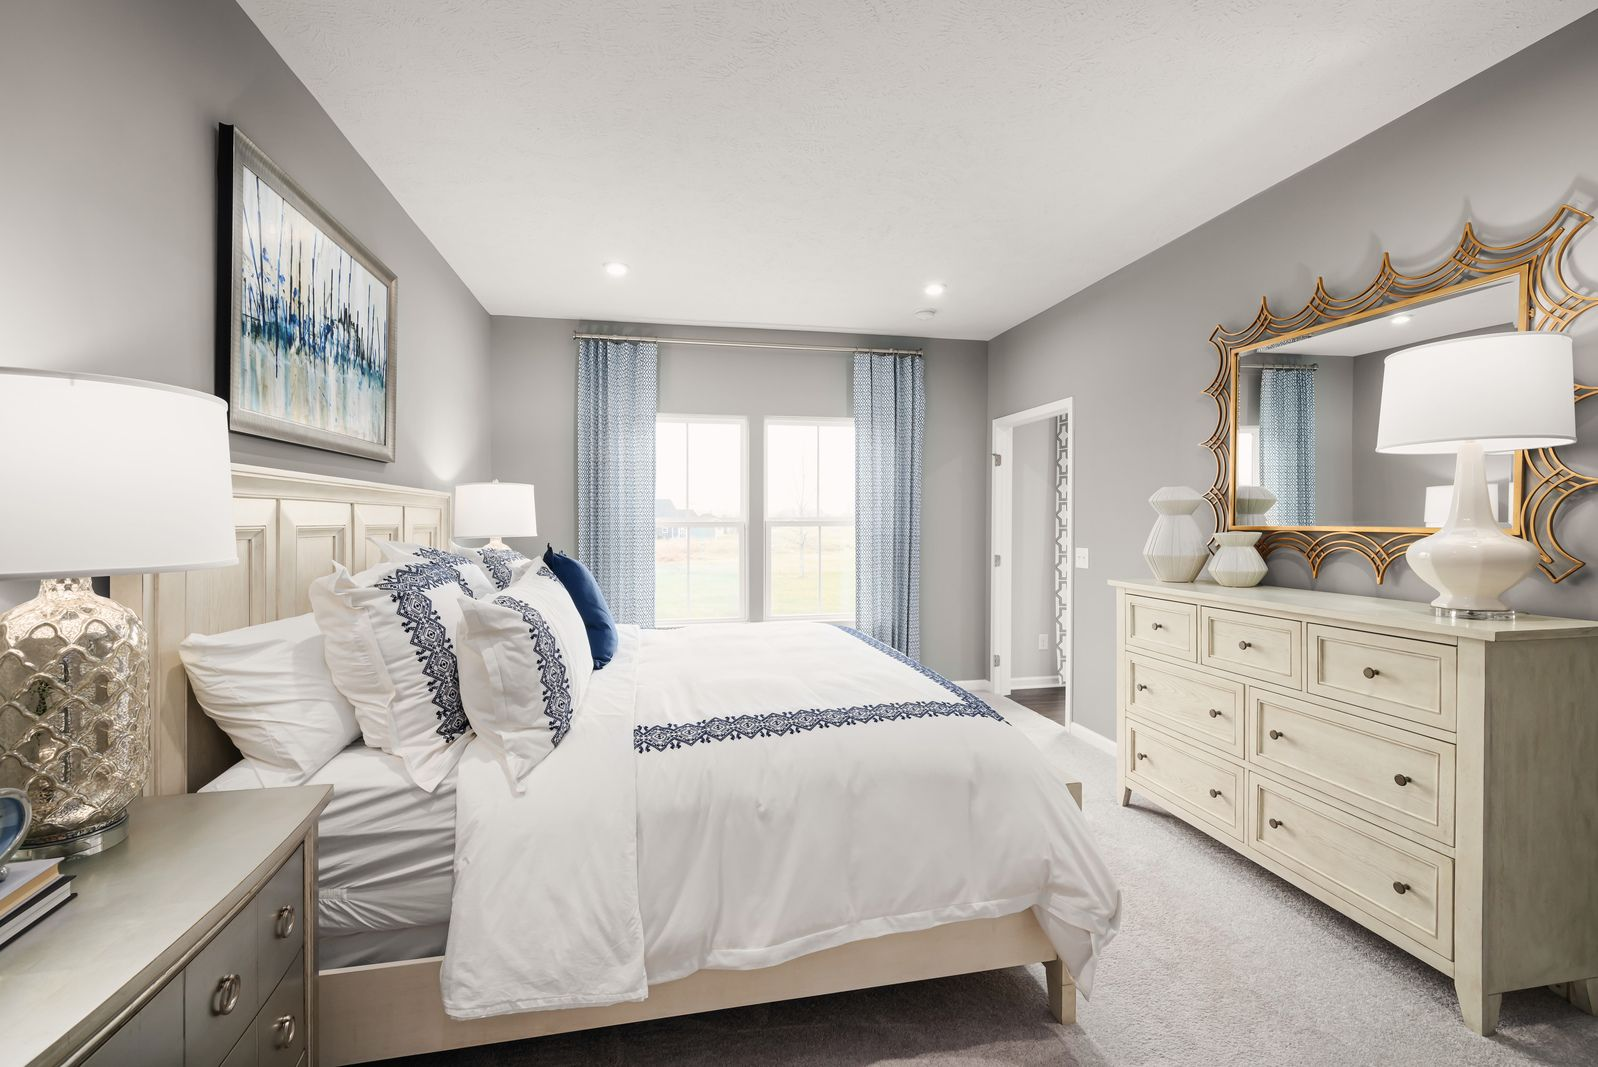 Bedroom featured in the Aviano By Ryan Homes in Pittsburgh, PA